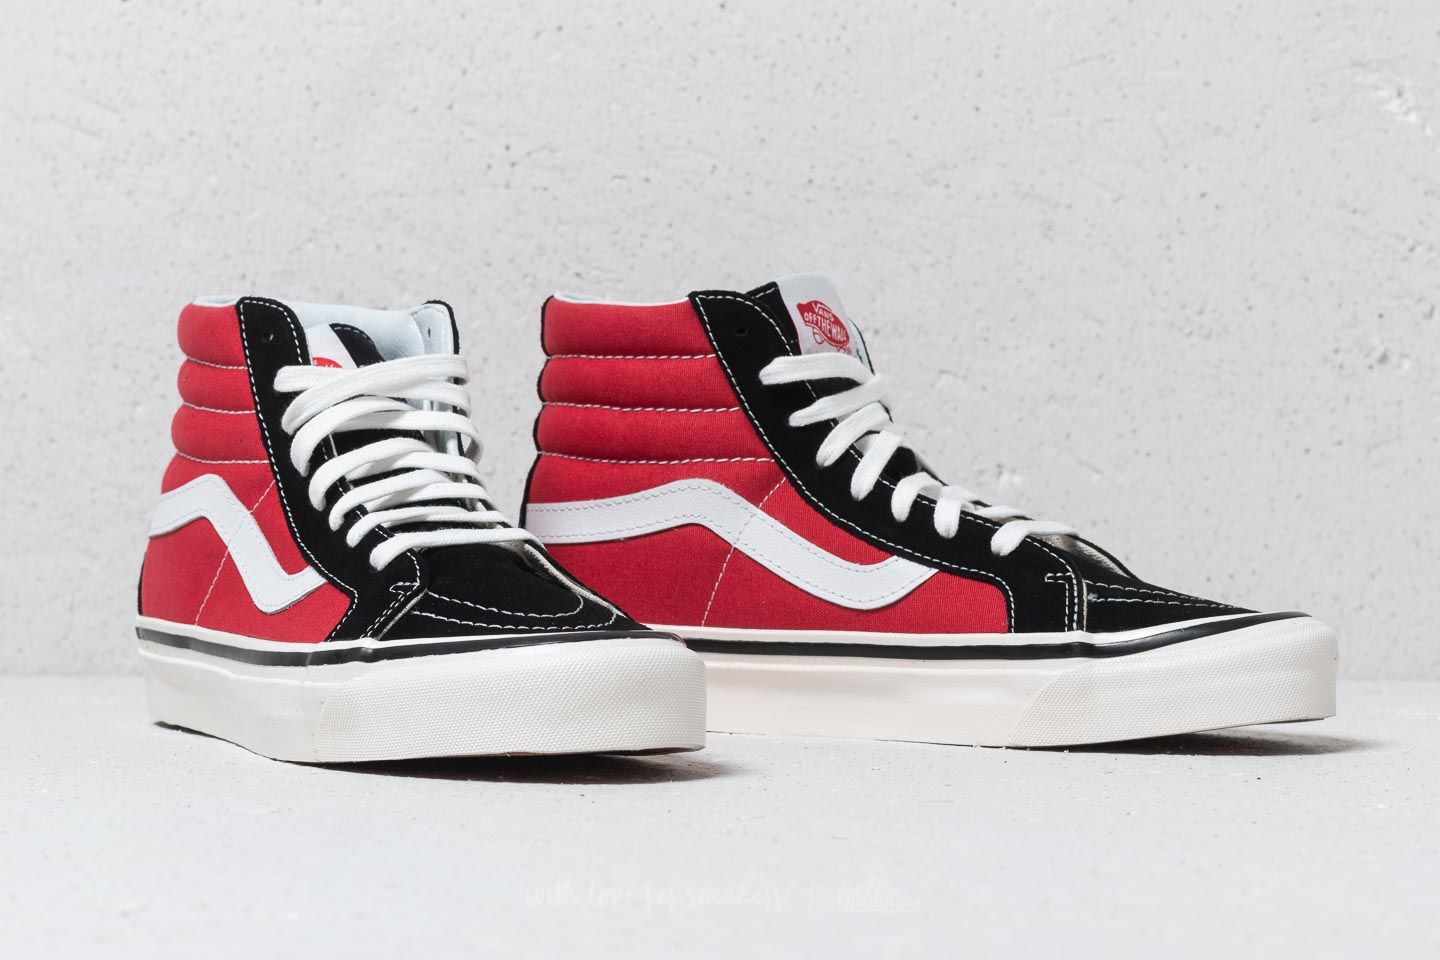 Vans Sk8-Hi 38 DX (Anaheim Factory) OG Black/ Red | Footshop